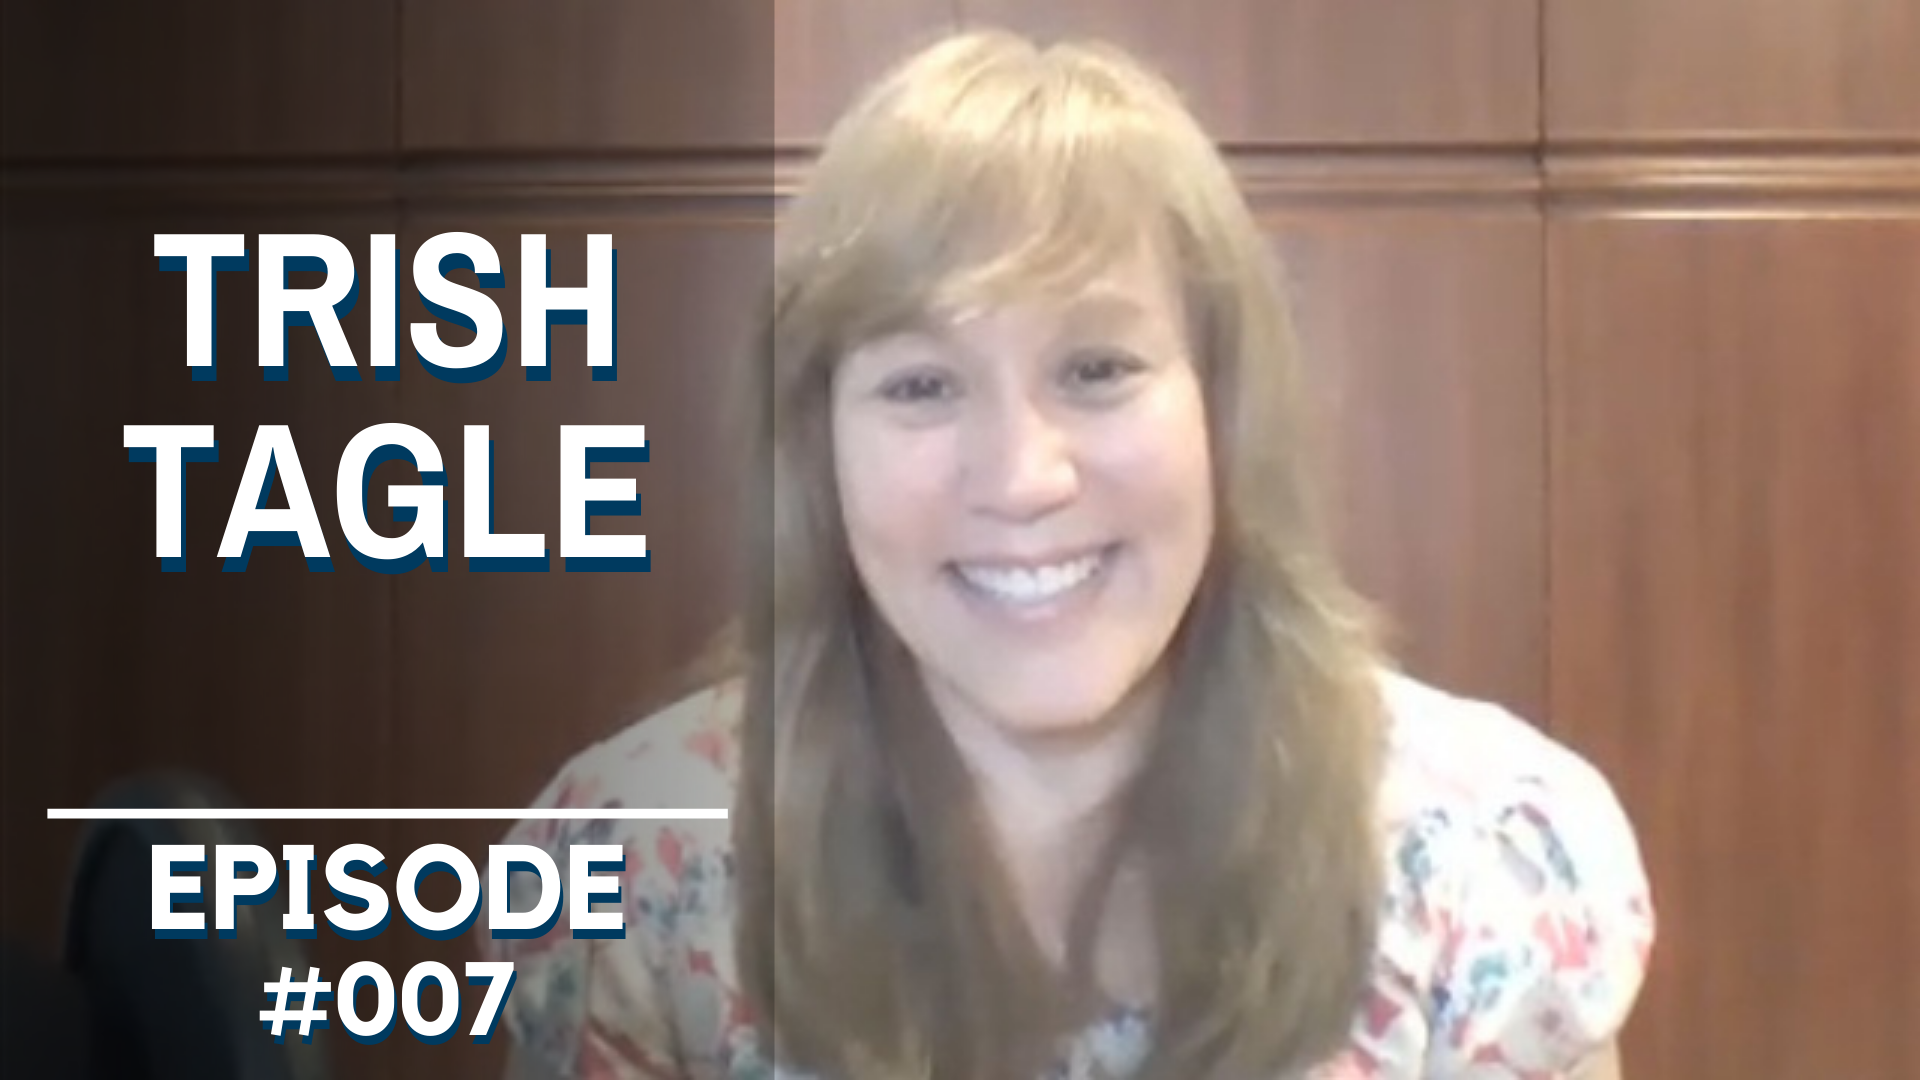 Trish Tagle: Get Unstuck With 1 Day Action Plan for Business Owners (Double espresso interview #007)